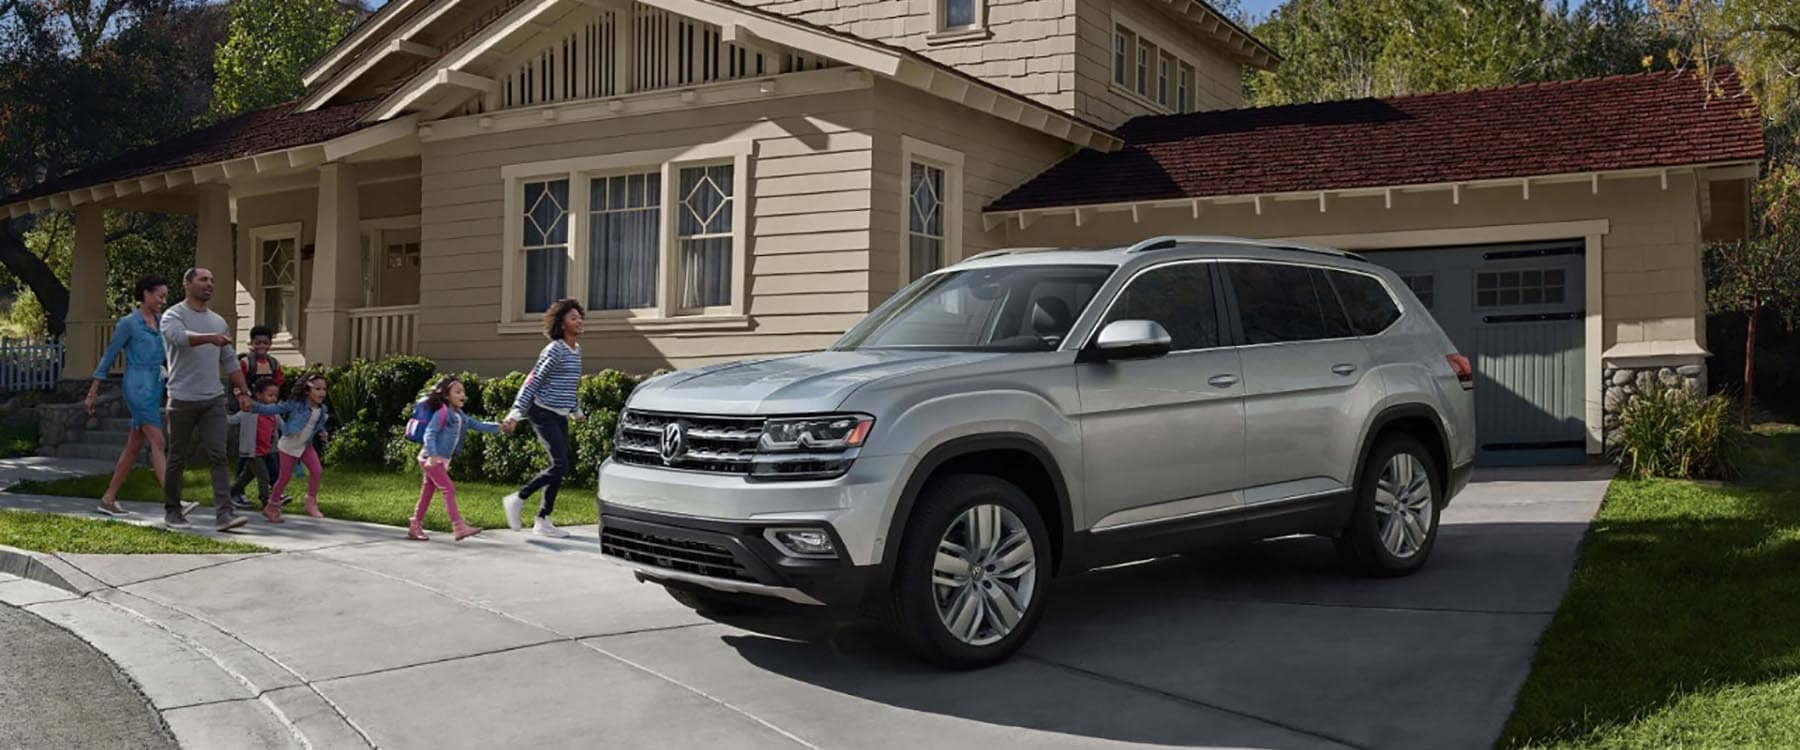 2018 Volkswagen Atlas Parked Outside Home